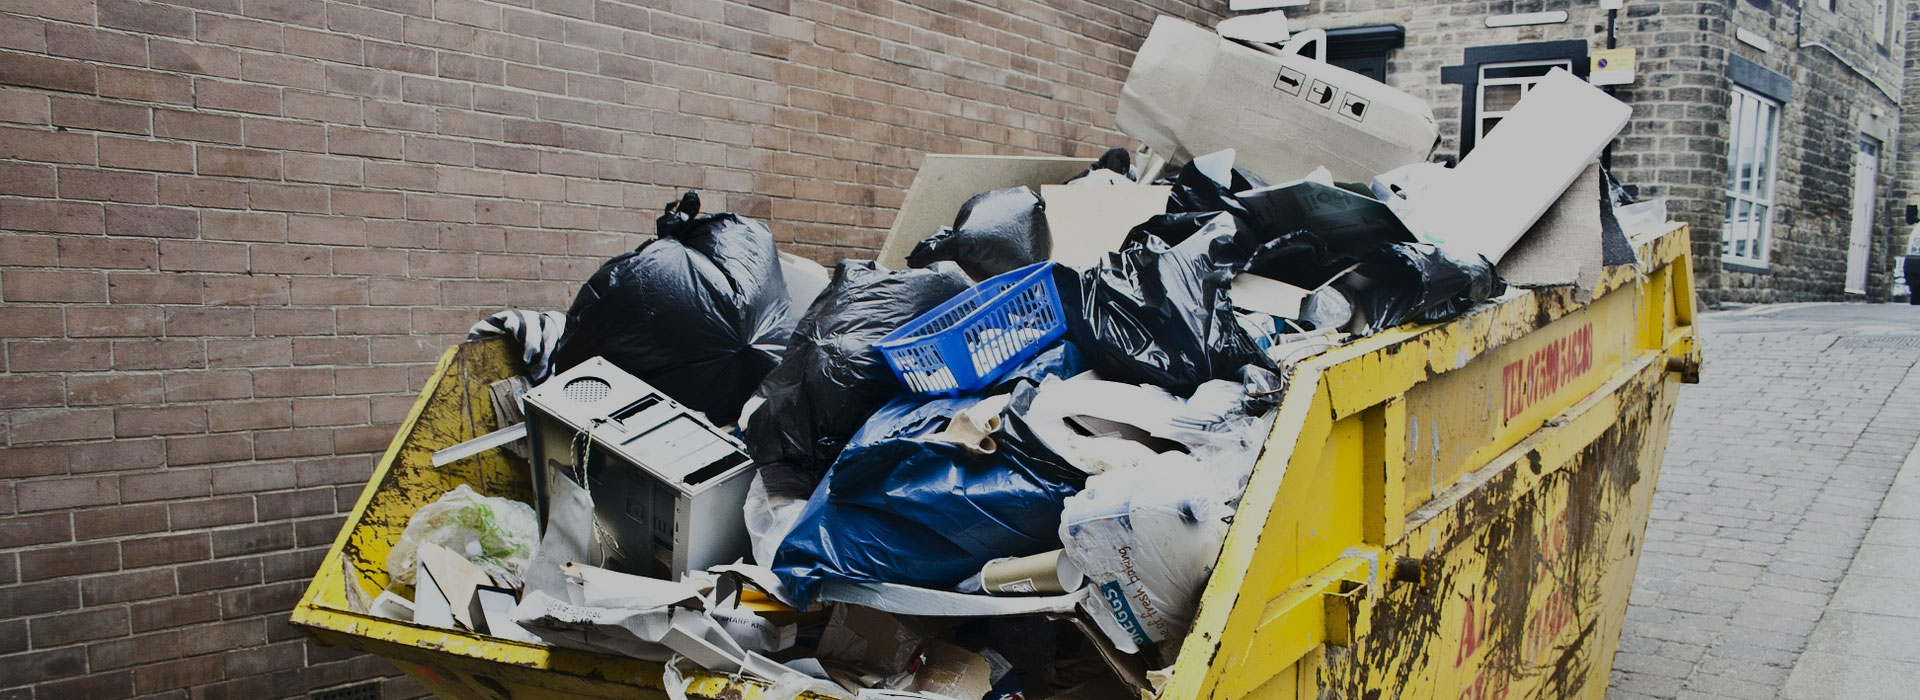 Commercial & Residential Rubbish Removal